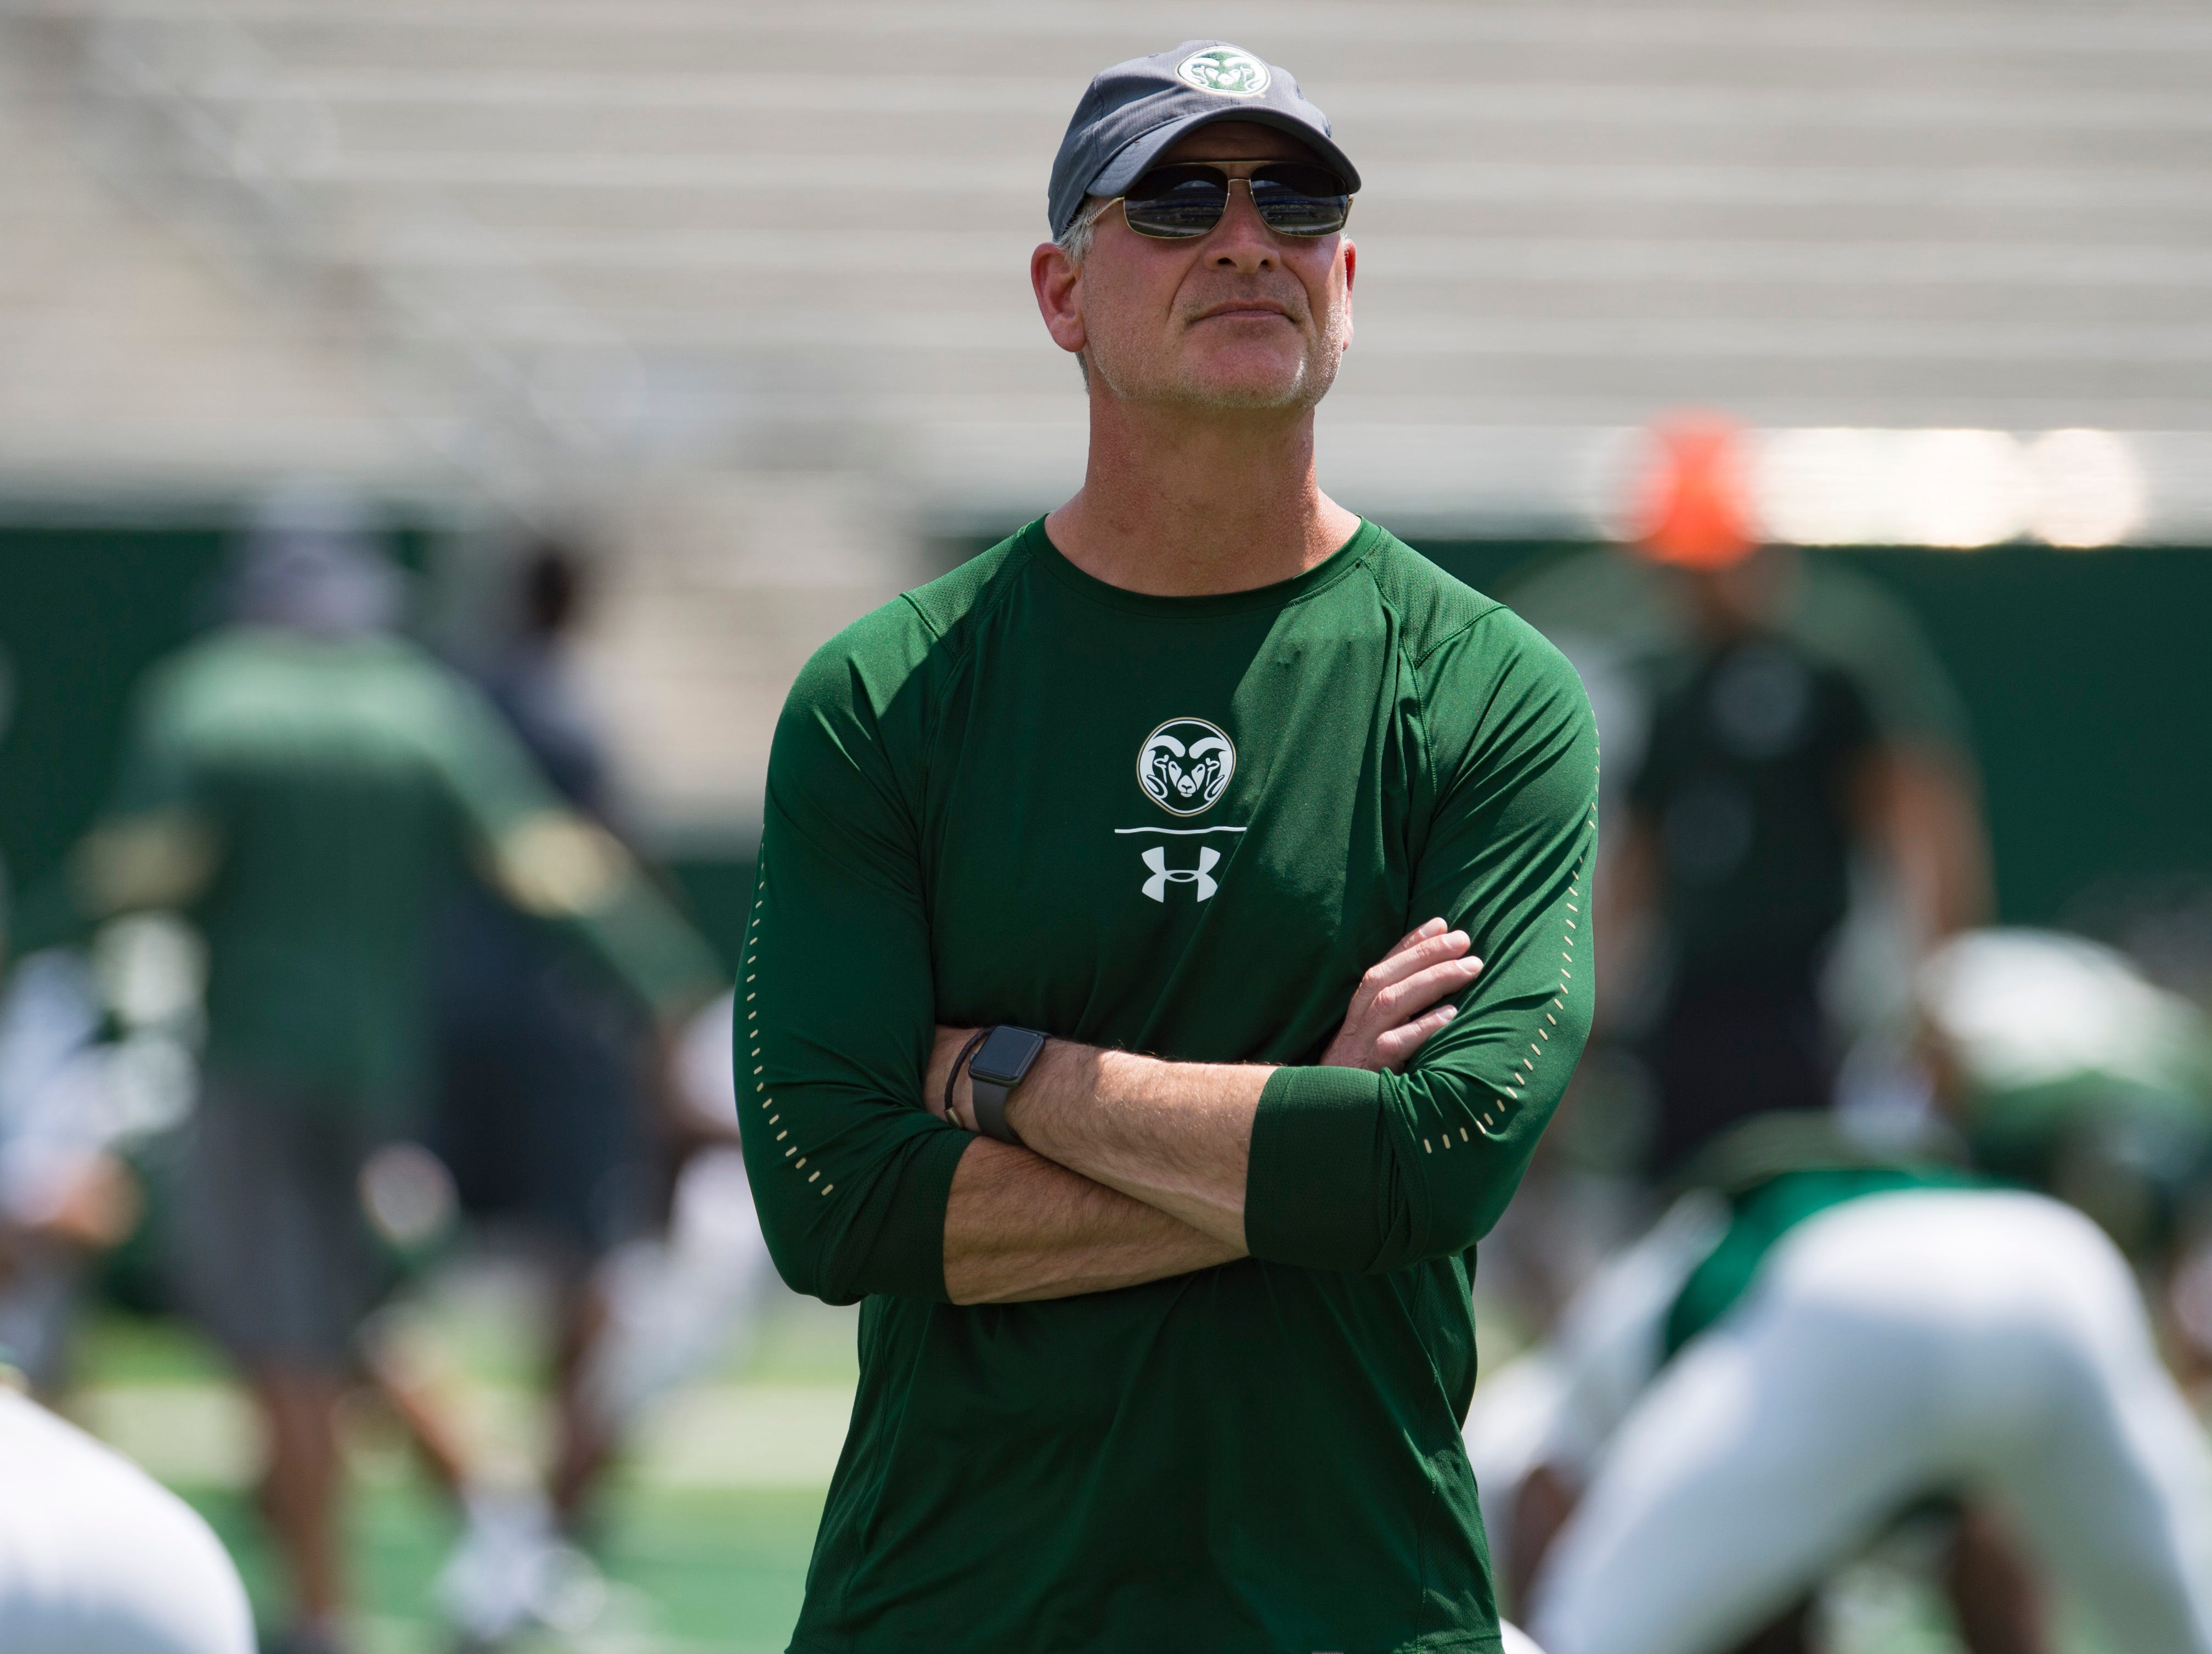 CSU defensive coordinator John Jancek watches the Rams warm up for a scrimmage during an open house hosted by the Rams outside of Canvas Stadium on Saturday, August 4, 2018.